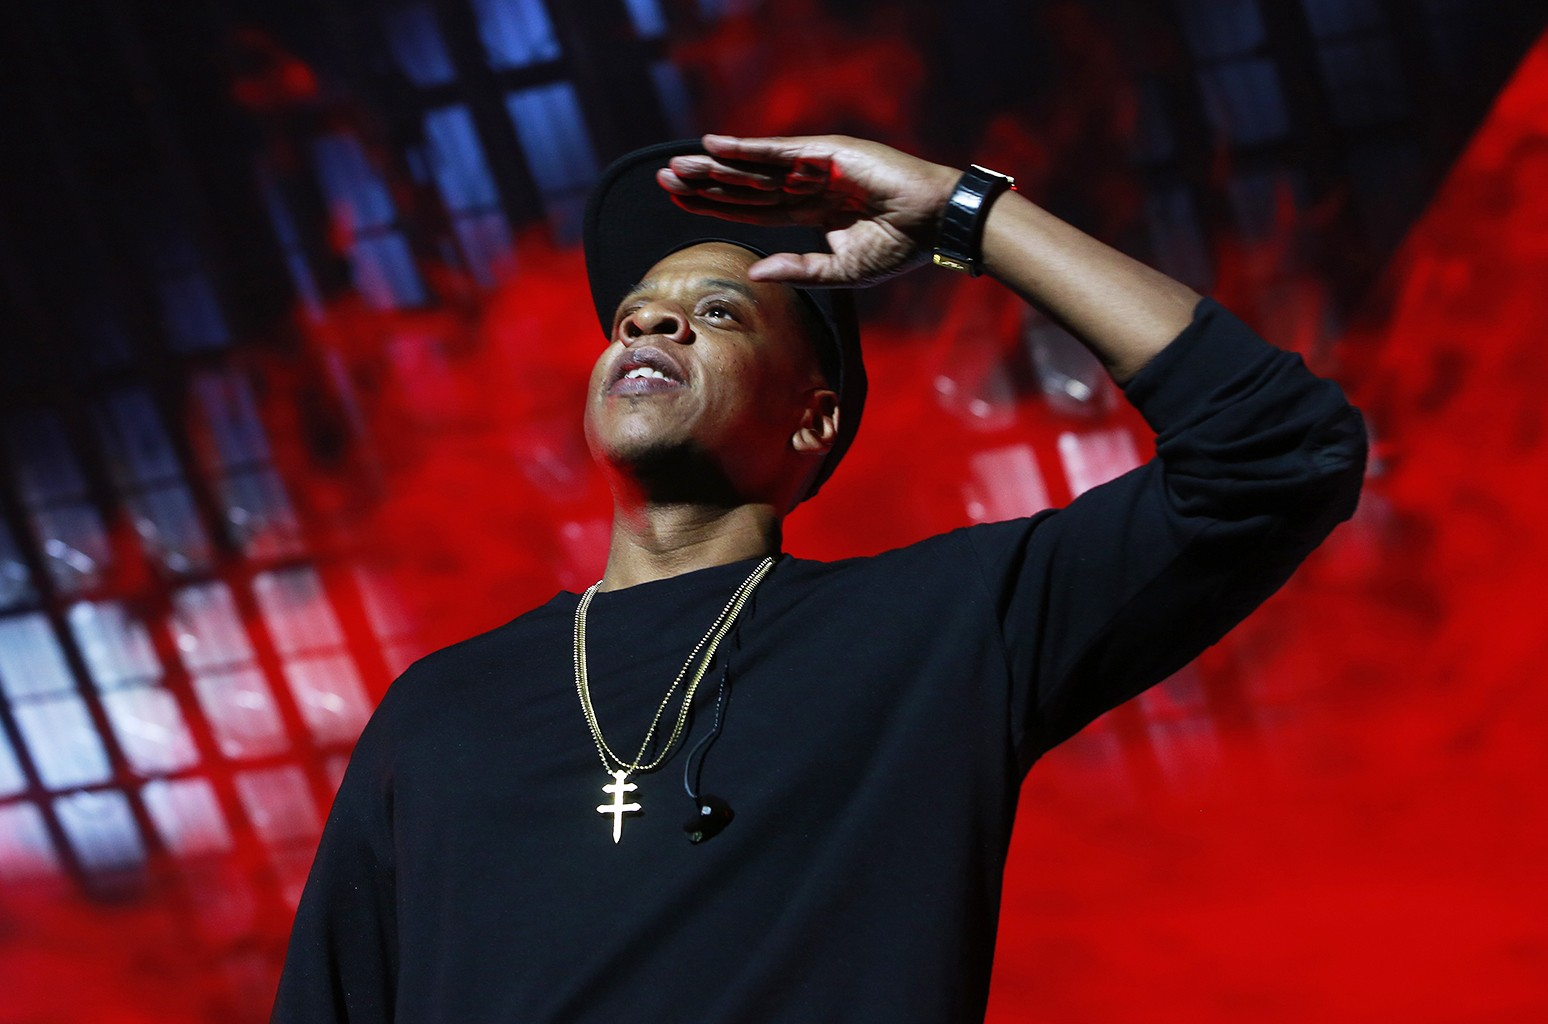 Jay Z performs at the Tidal X: 1020 Amplified by HTC concert at the Barclays Center on Oct. 20, 2015 in New York City.